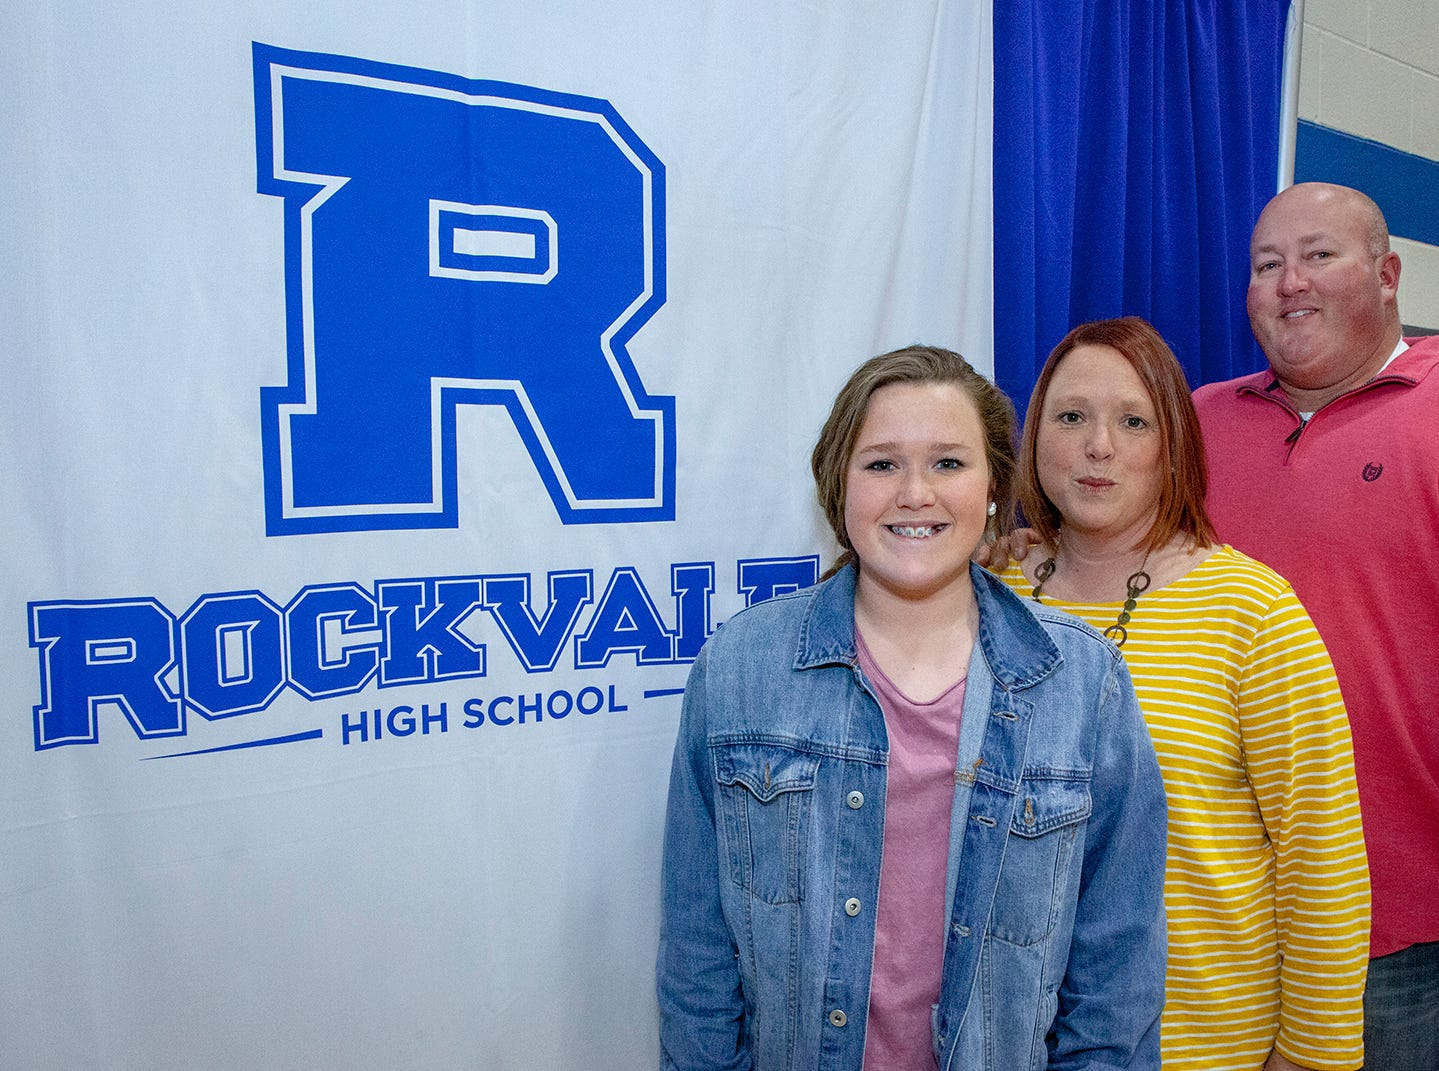 Rockvale High School open house was held March 7, 2019, at Rockvale Middle.